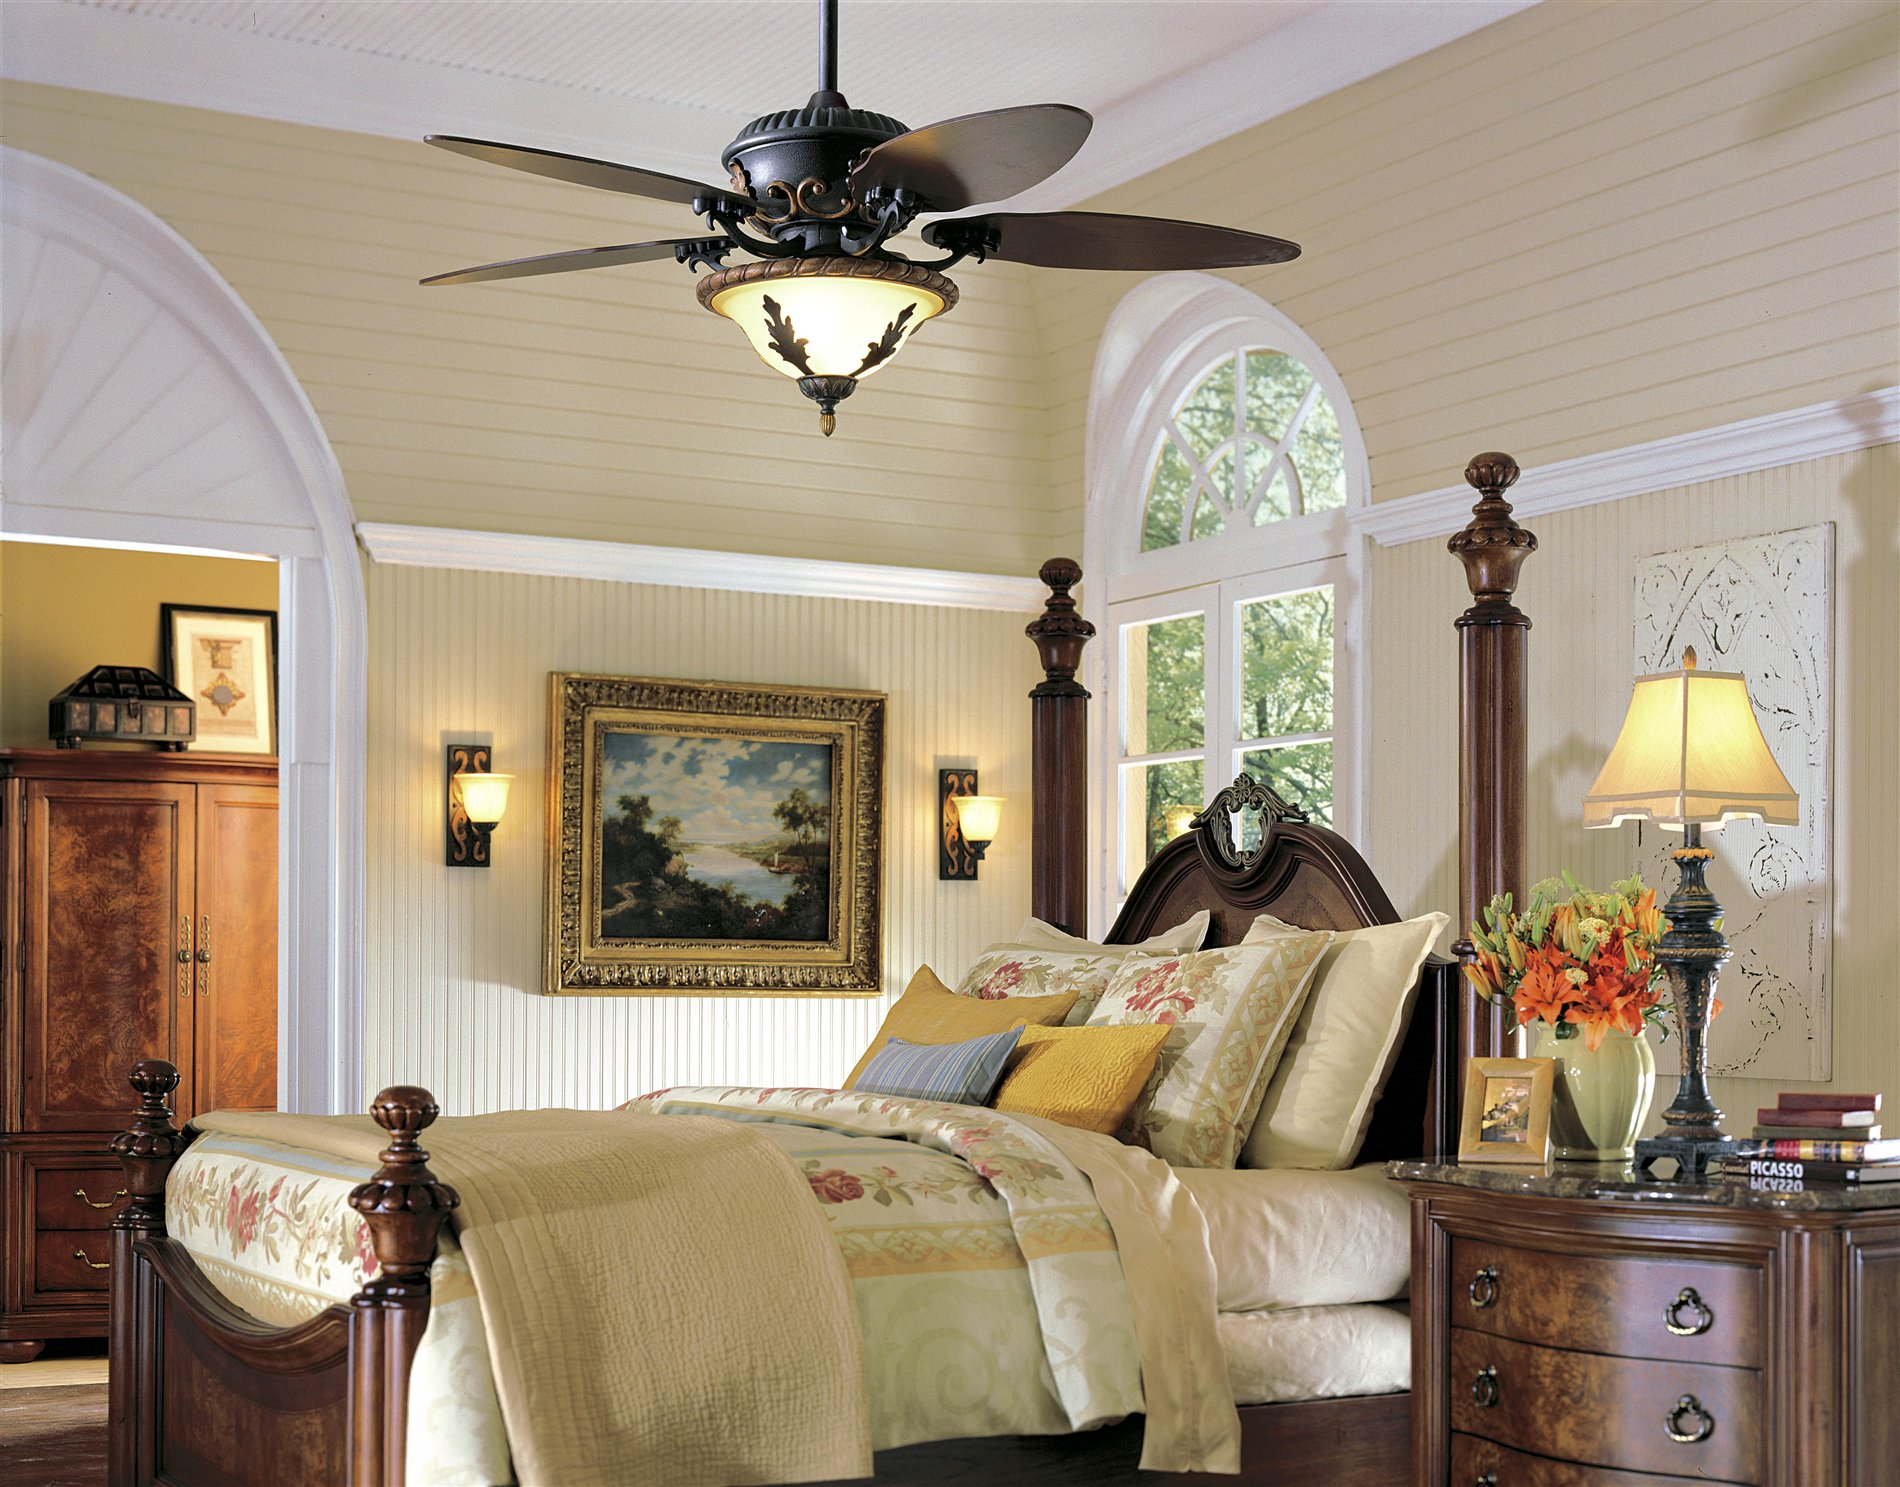 Create a cooling effect with Ceiling fan darbylanefurniture